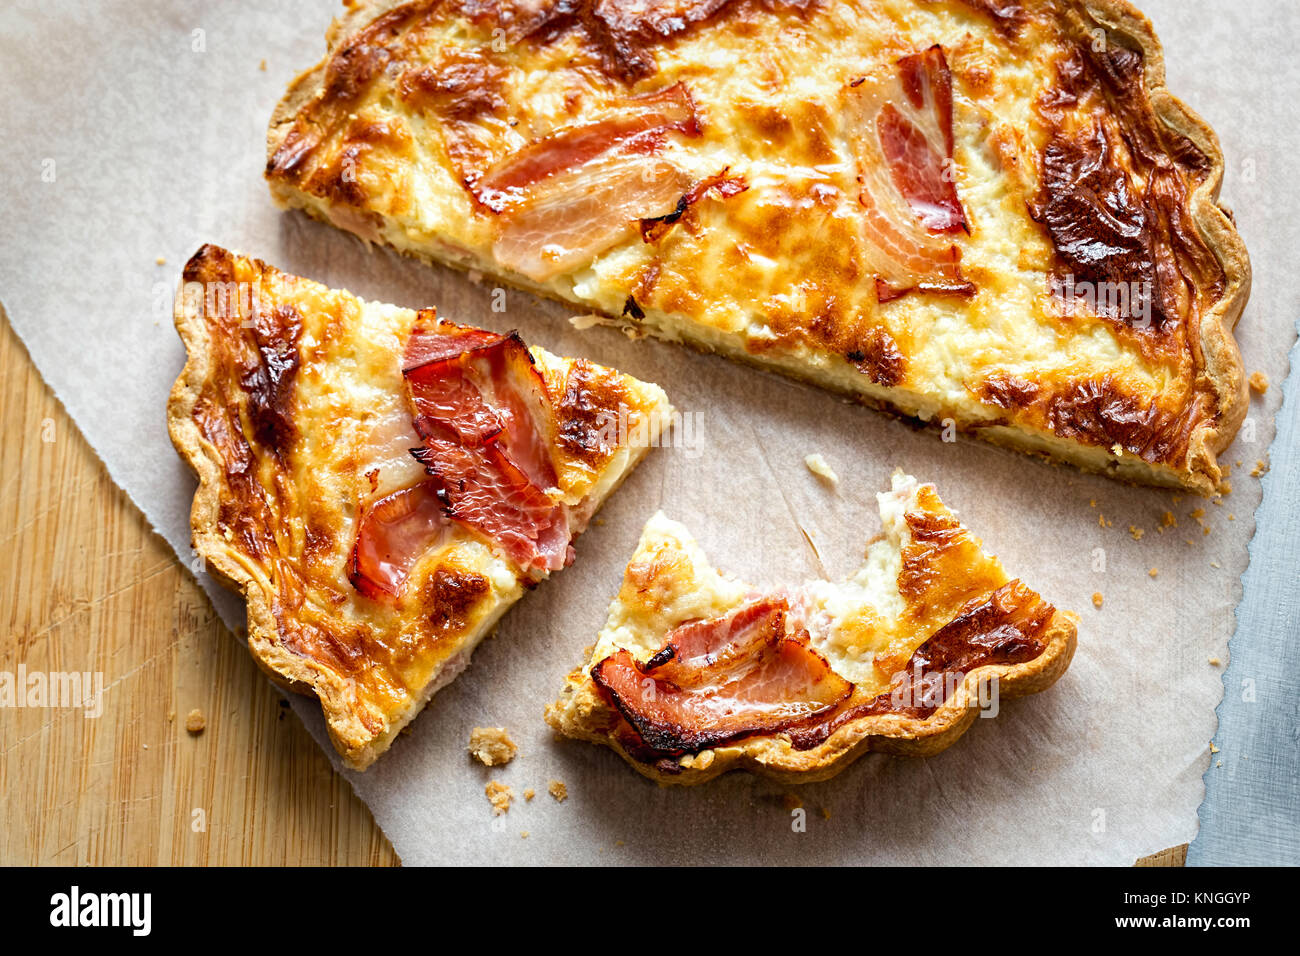 Bacon and cheddar quiche - Stock Image